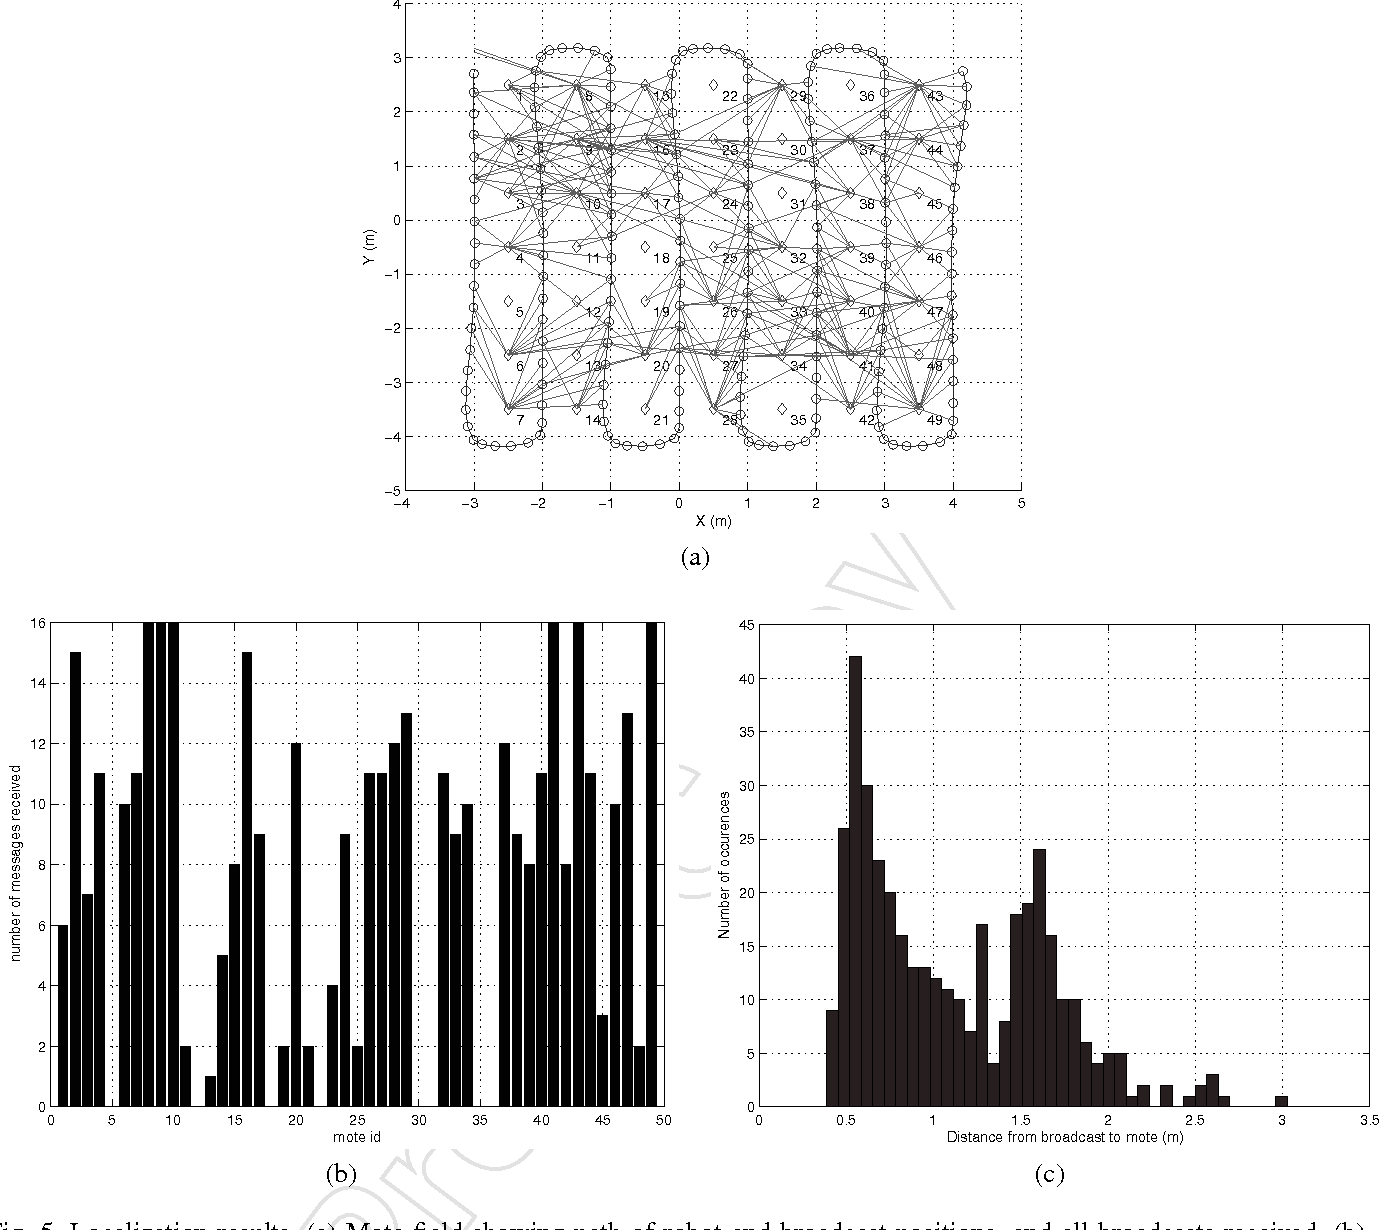 Fig. 5. Localization results. (a) Mote field showing path of robot and broadcast positions, and all broadcasts received. (b) Number of localization messages received by each node. (c) Histogram of distances from Mote to broadcast.